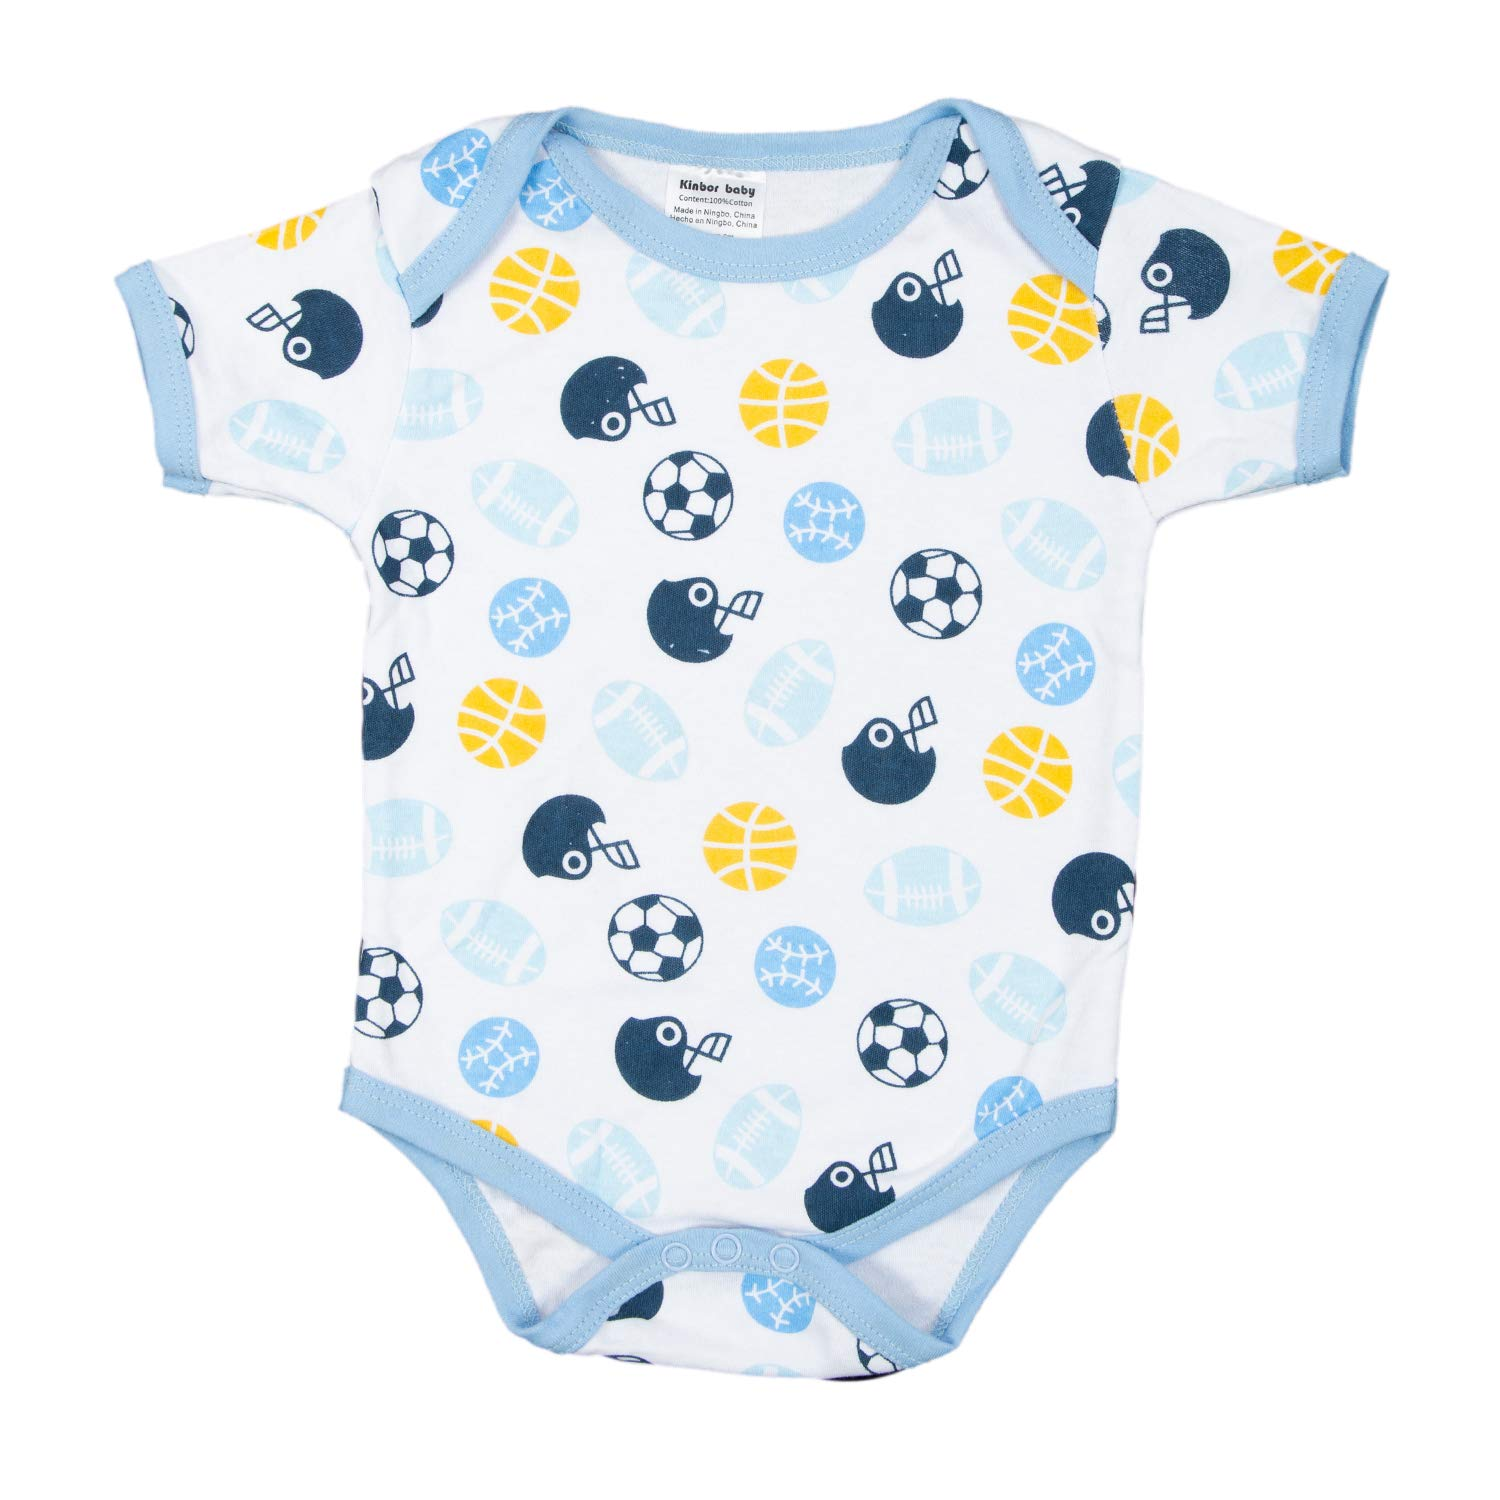 Kinbor Baby Newborn 10 Piece Essential Baby Layette Set for Boys and Girls